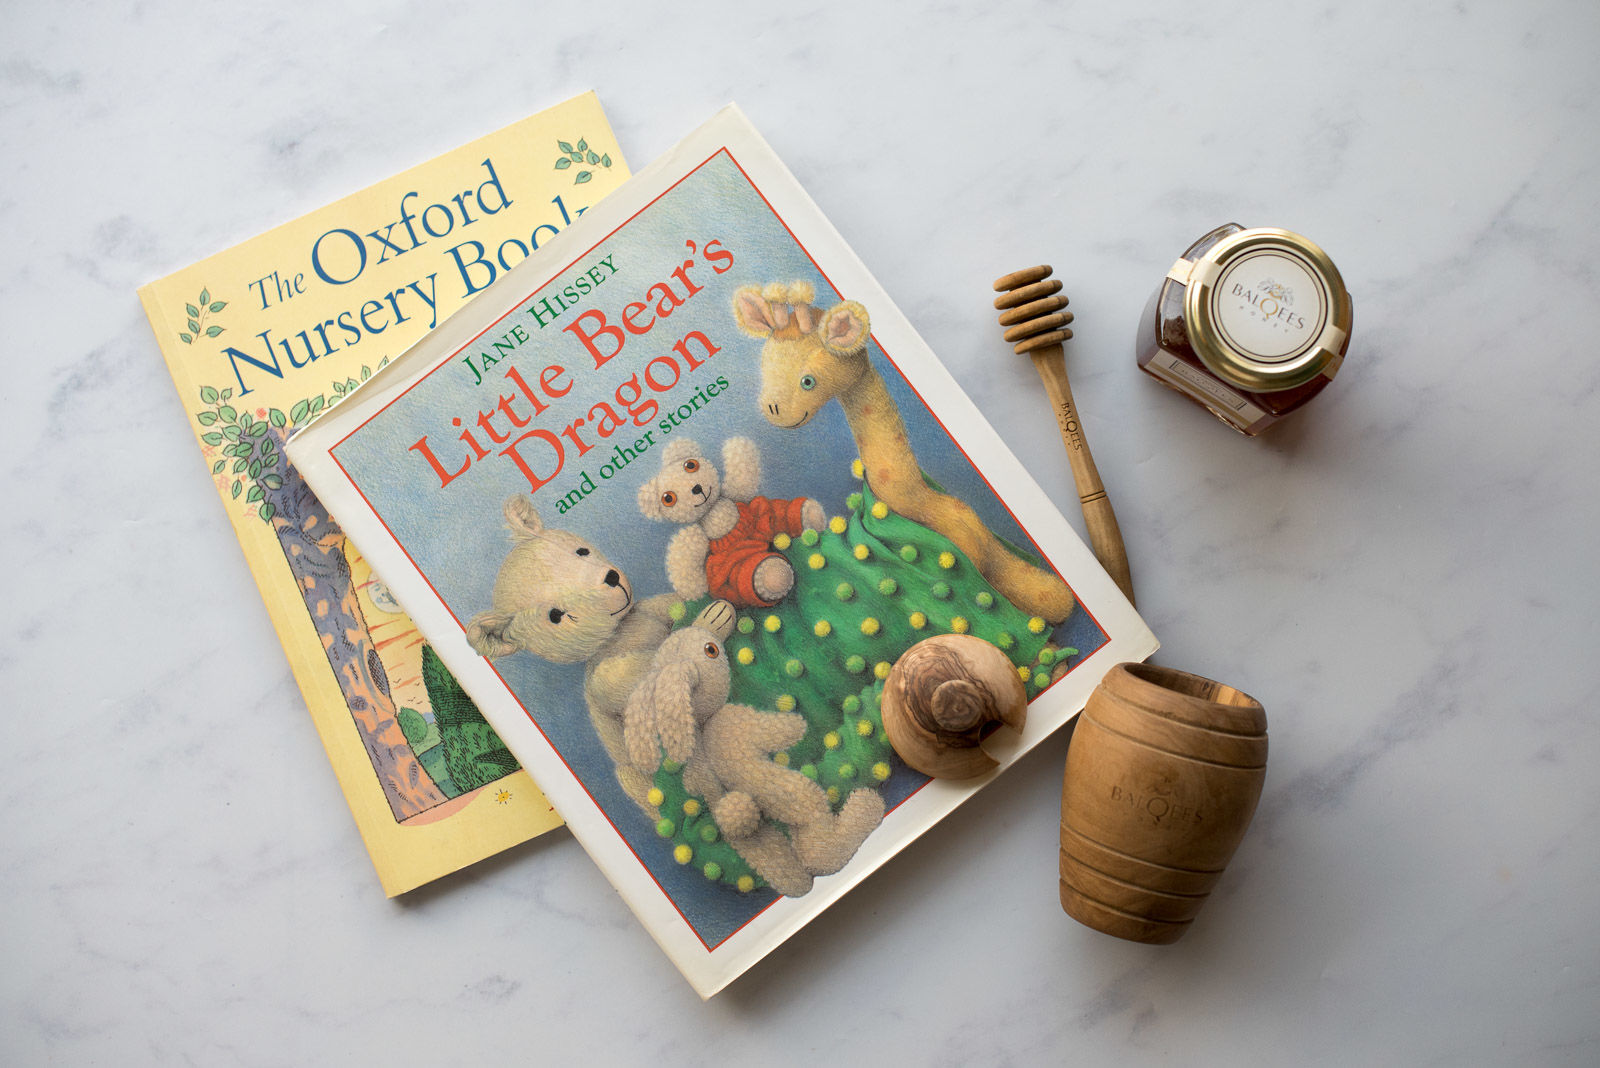 a pot of raw honey and some children's books